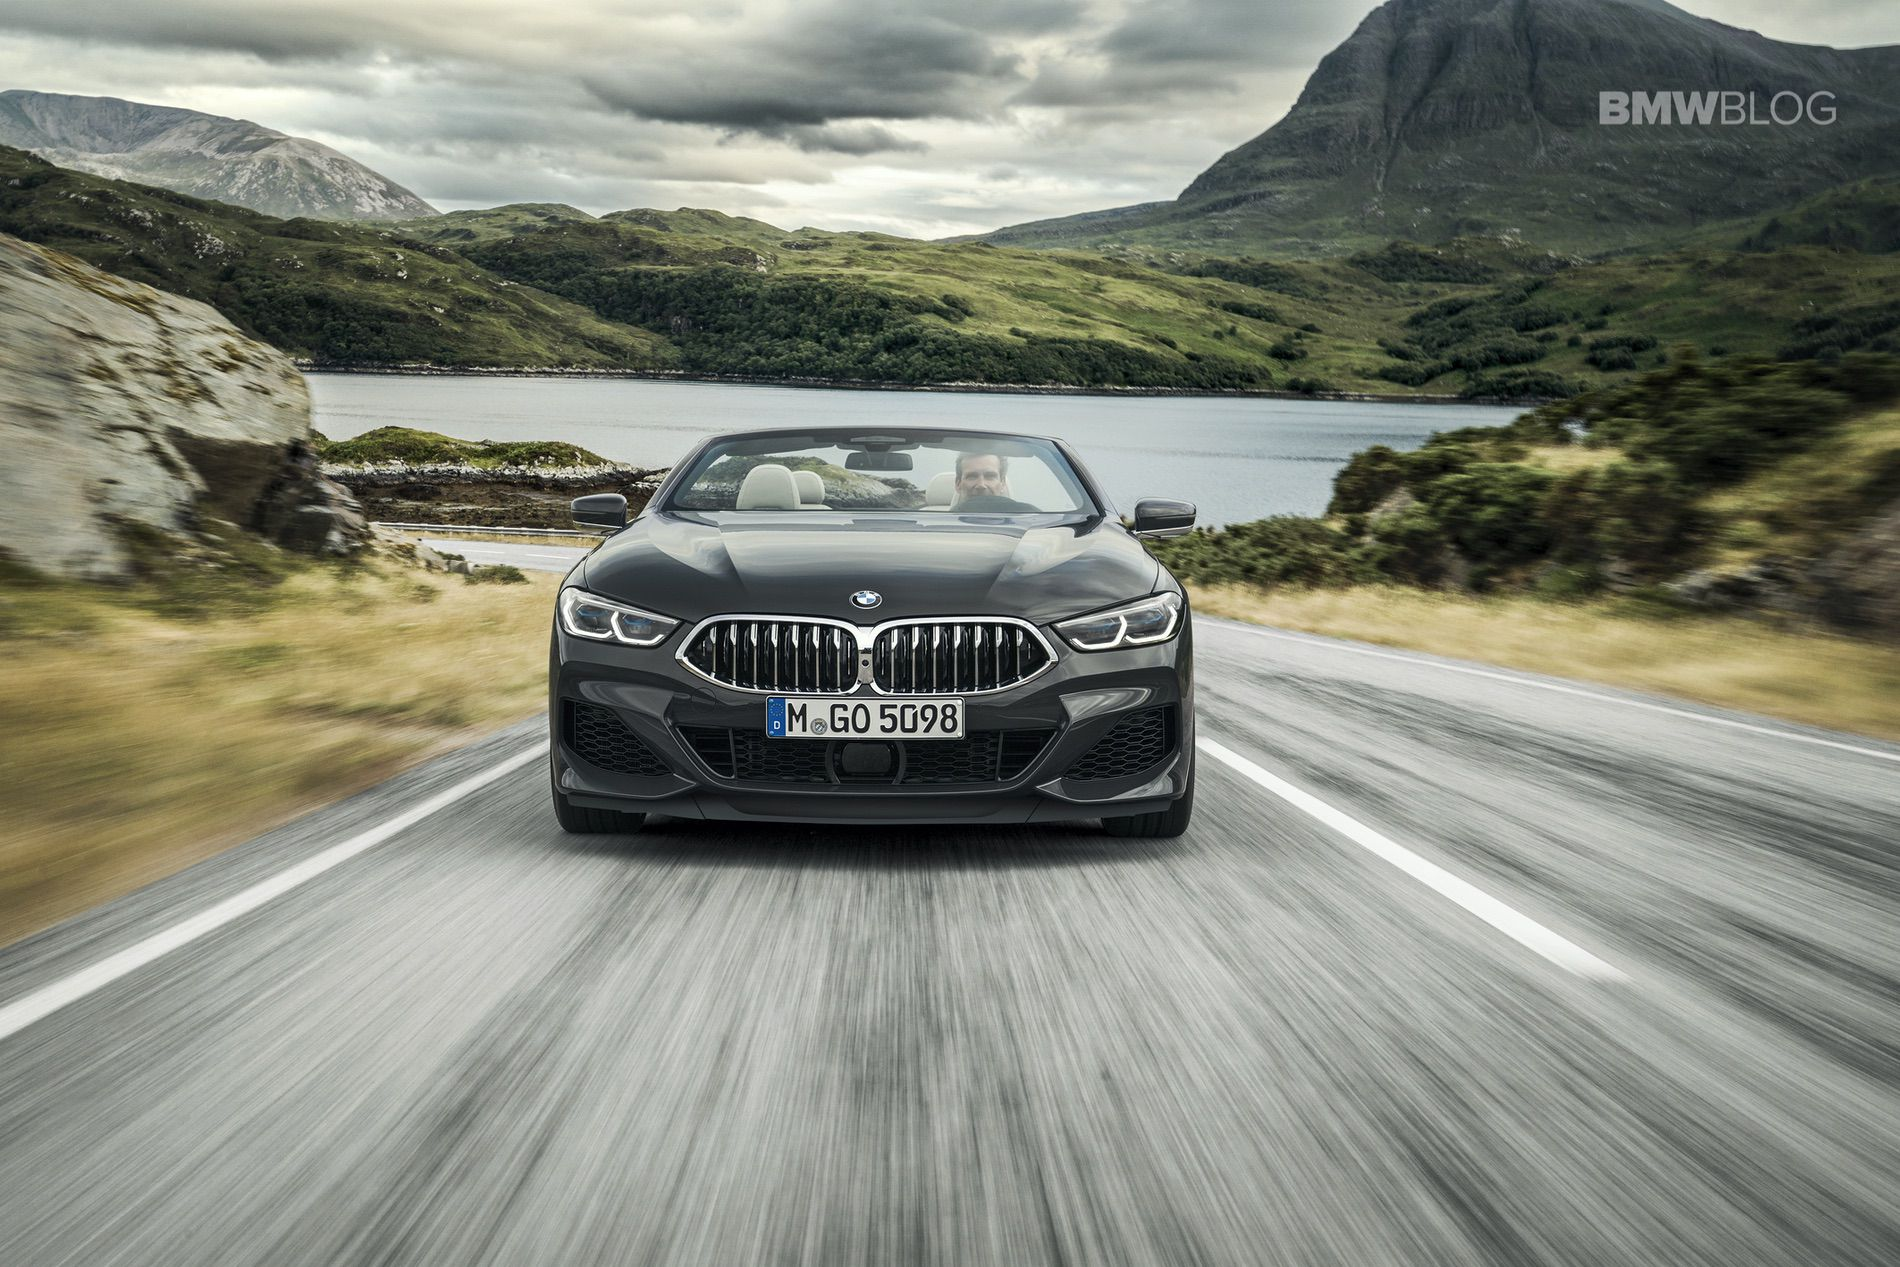 BMW 8 Series Convertible images 13